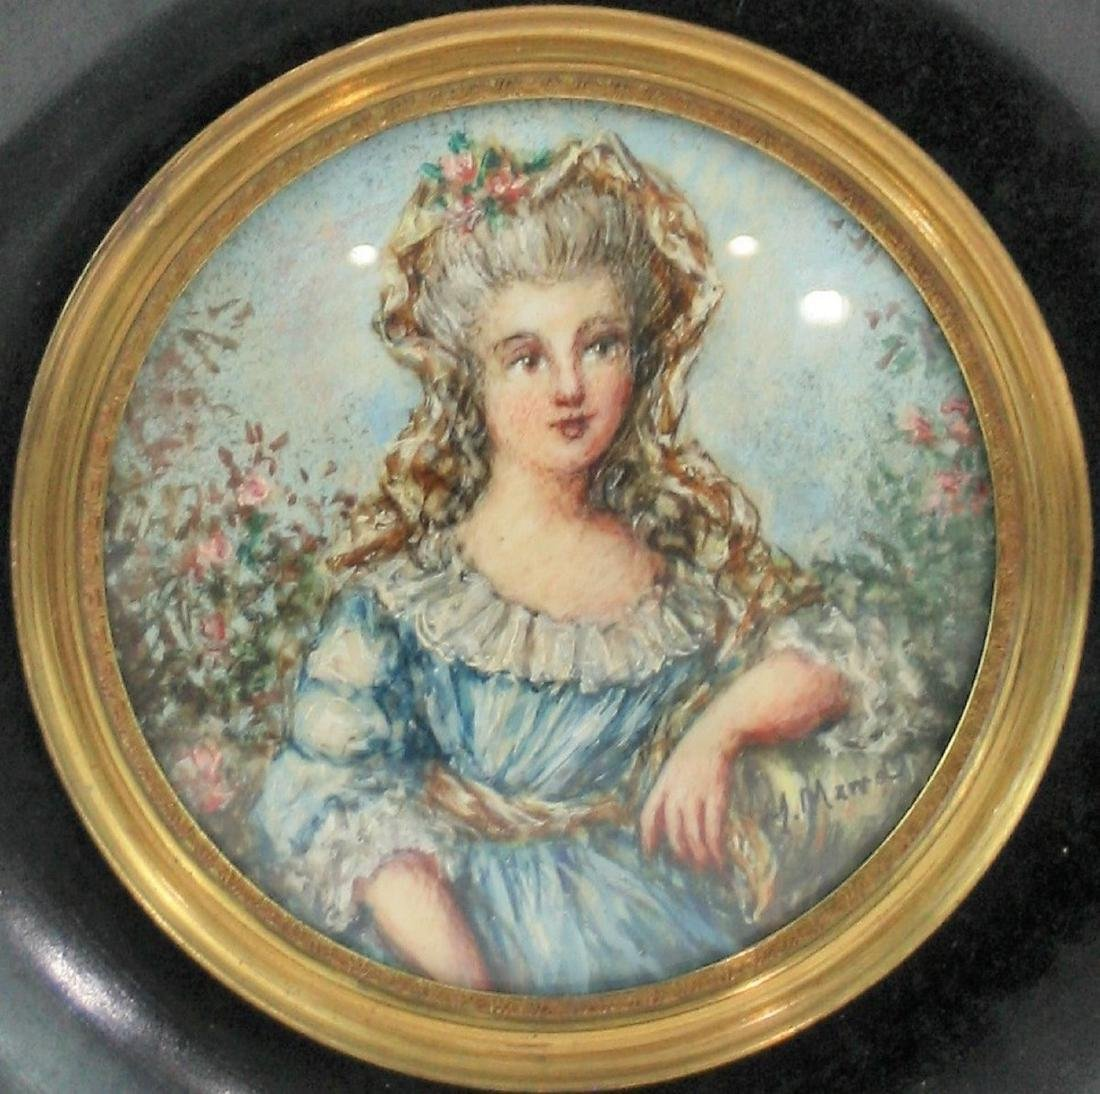 Miniature of the 19th or 20th century - 2